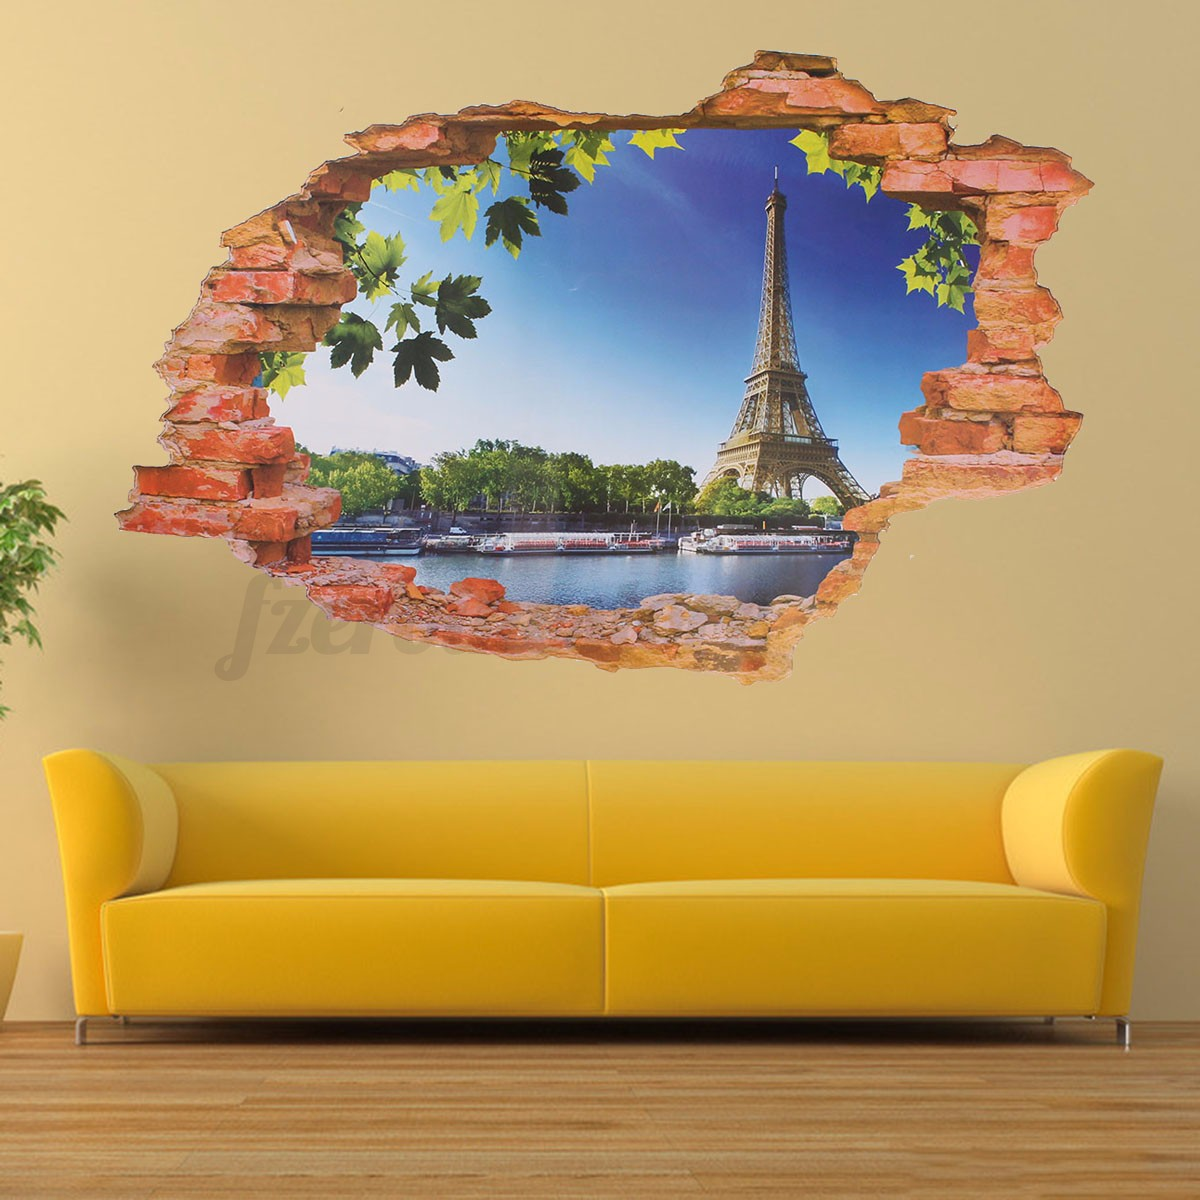 multi pattern 3d removable wall sticker art diy quote soak your trouble away art quote wall decal decor vinyl